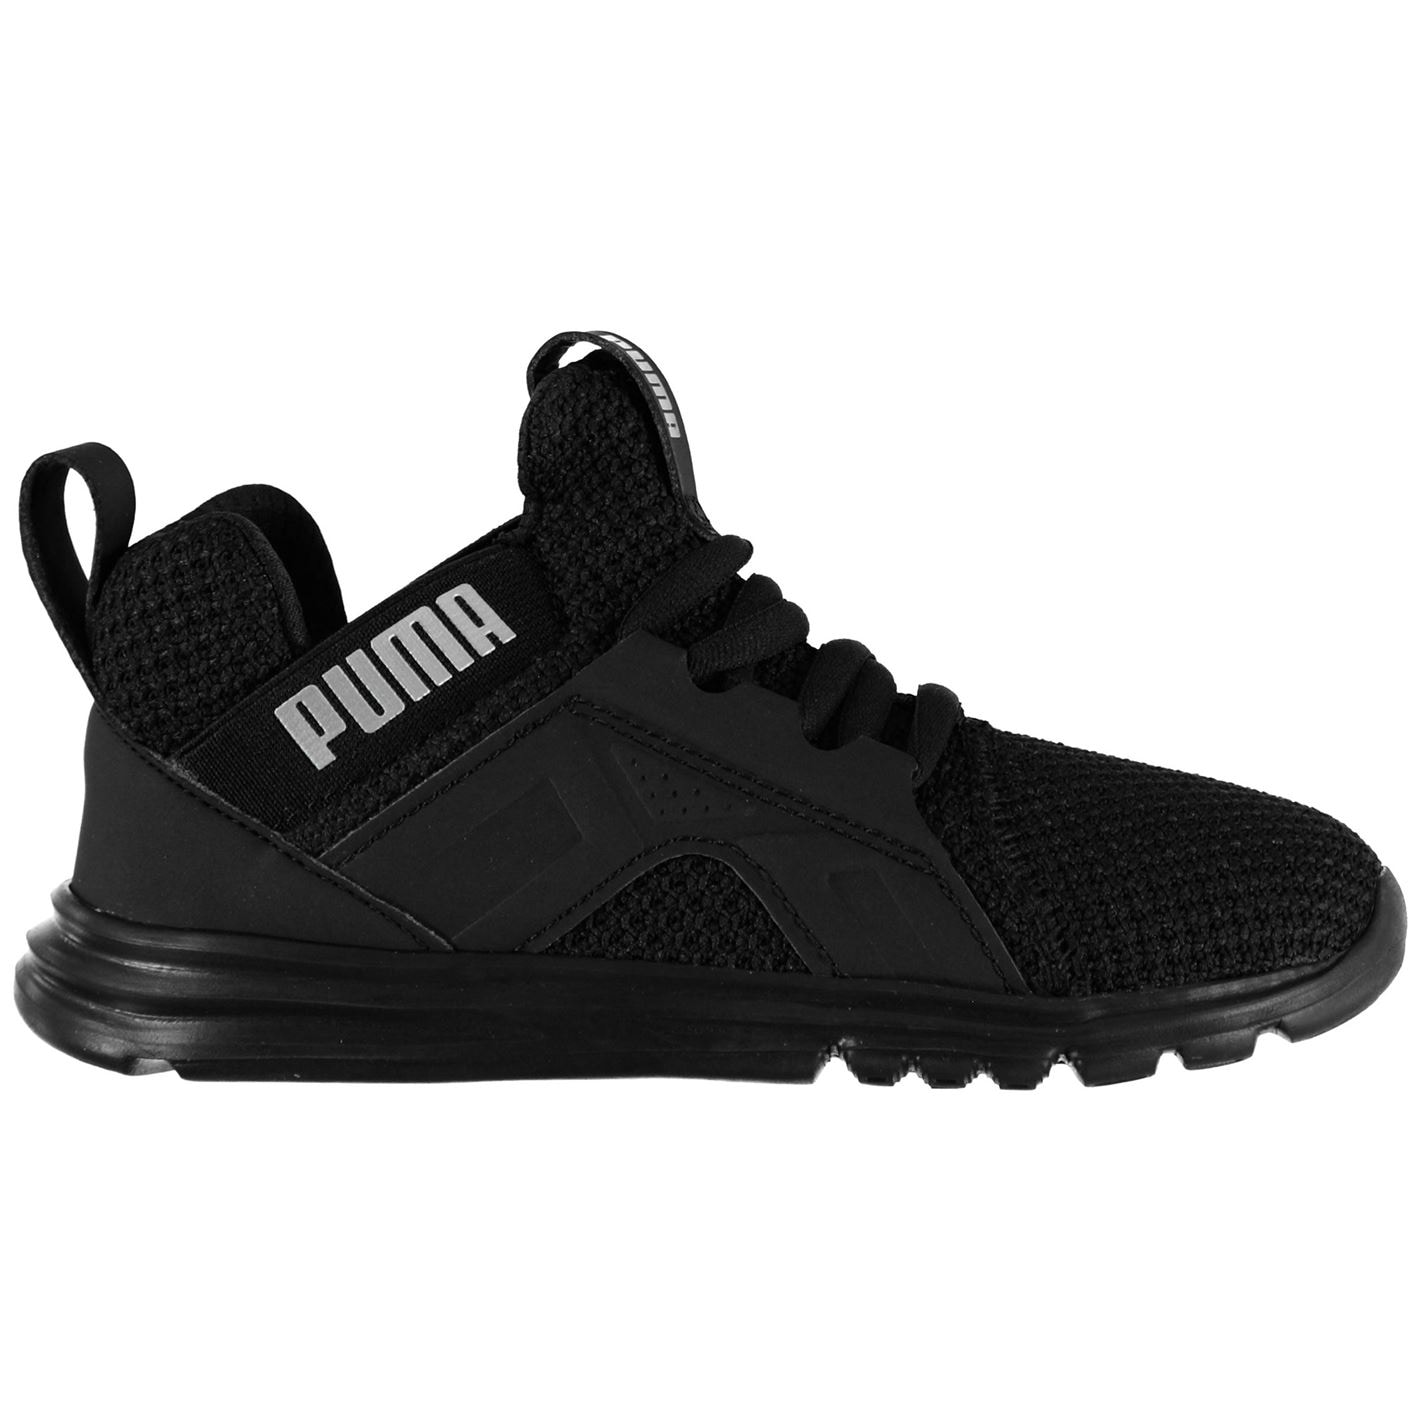 Puma Enzo Weave Trainers Infant Boys Black